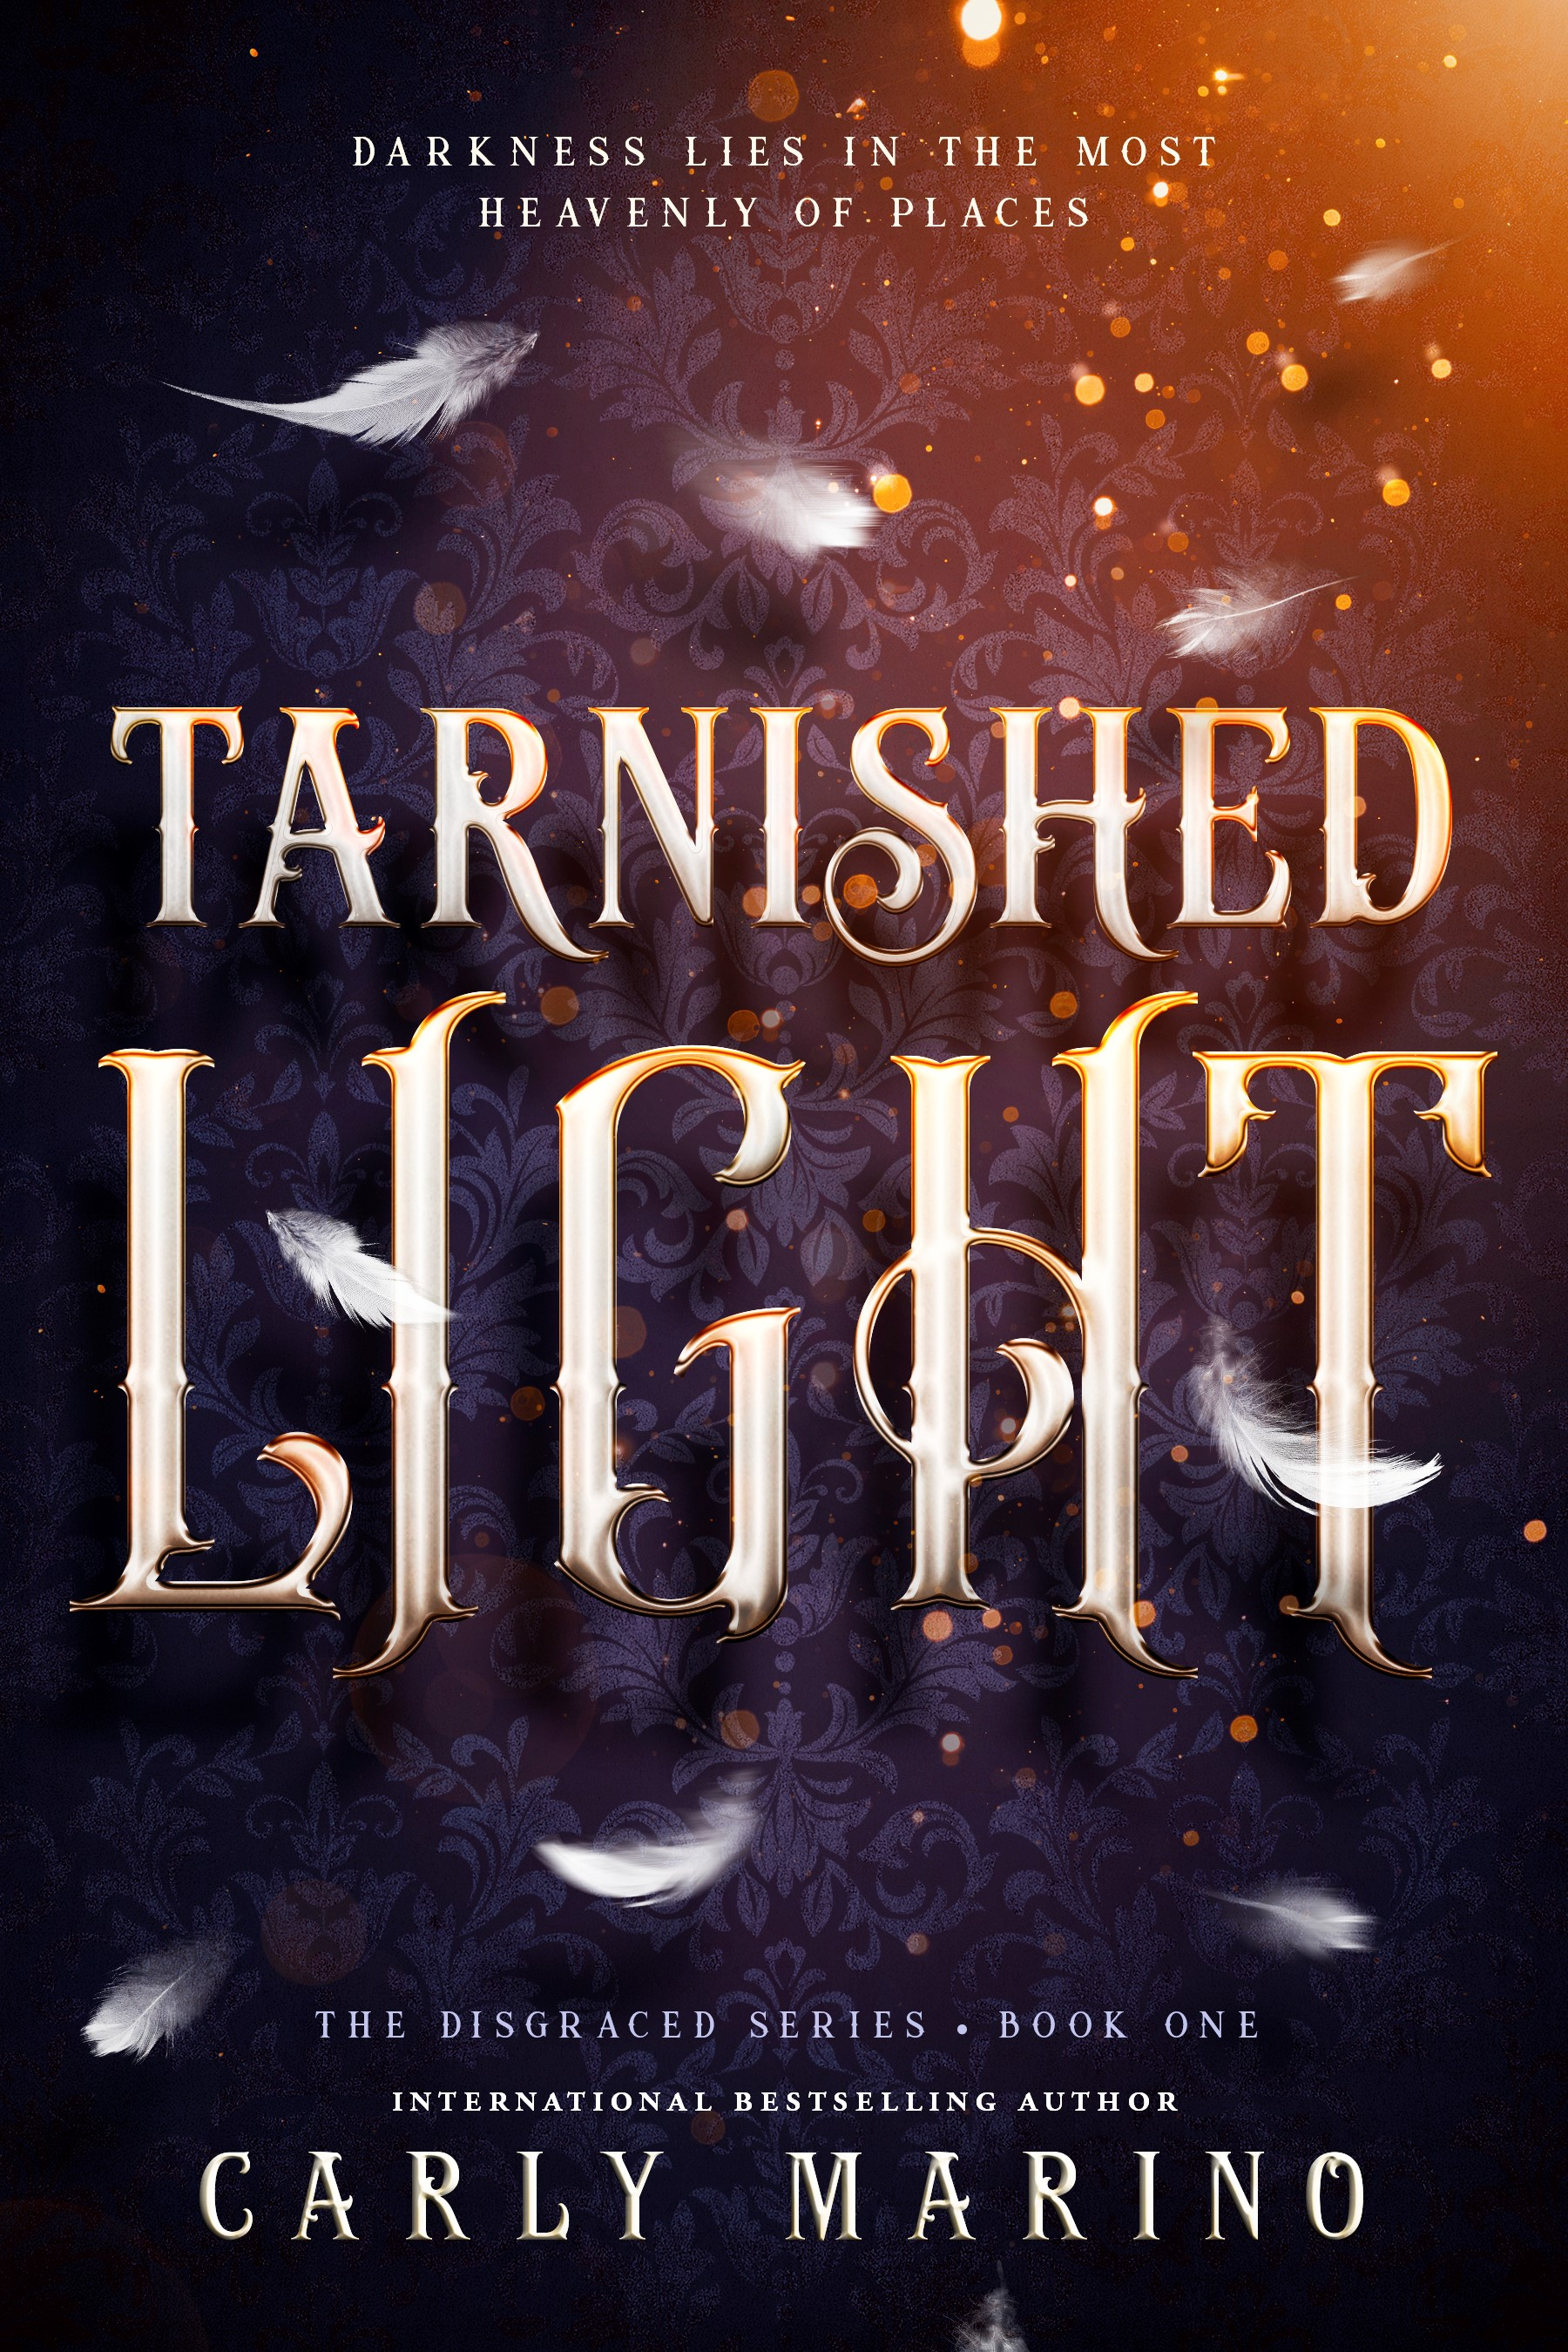 Tarnished Light by Carly Marino